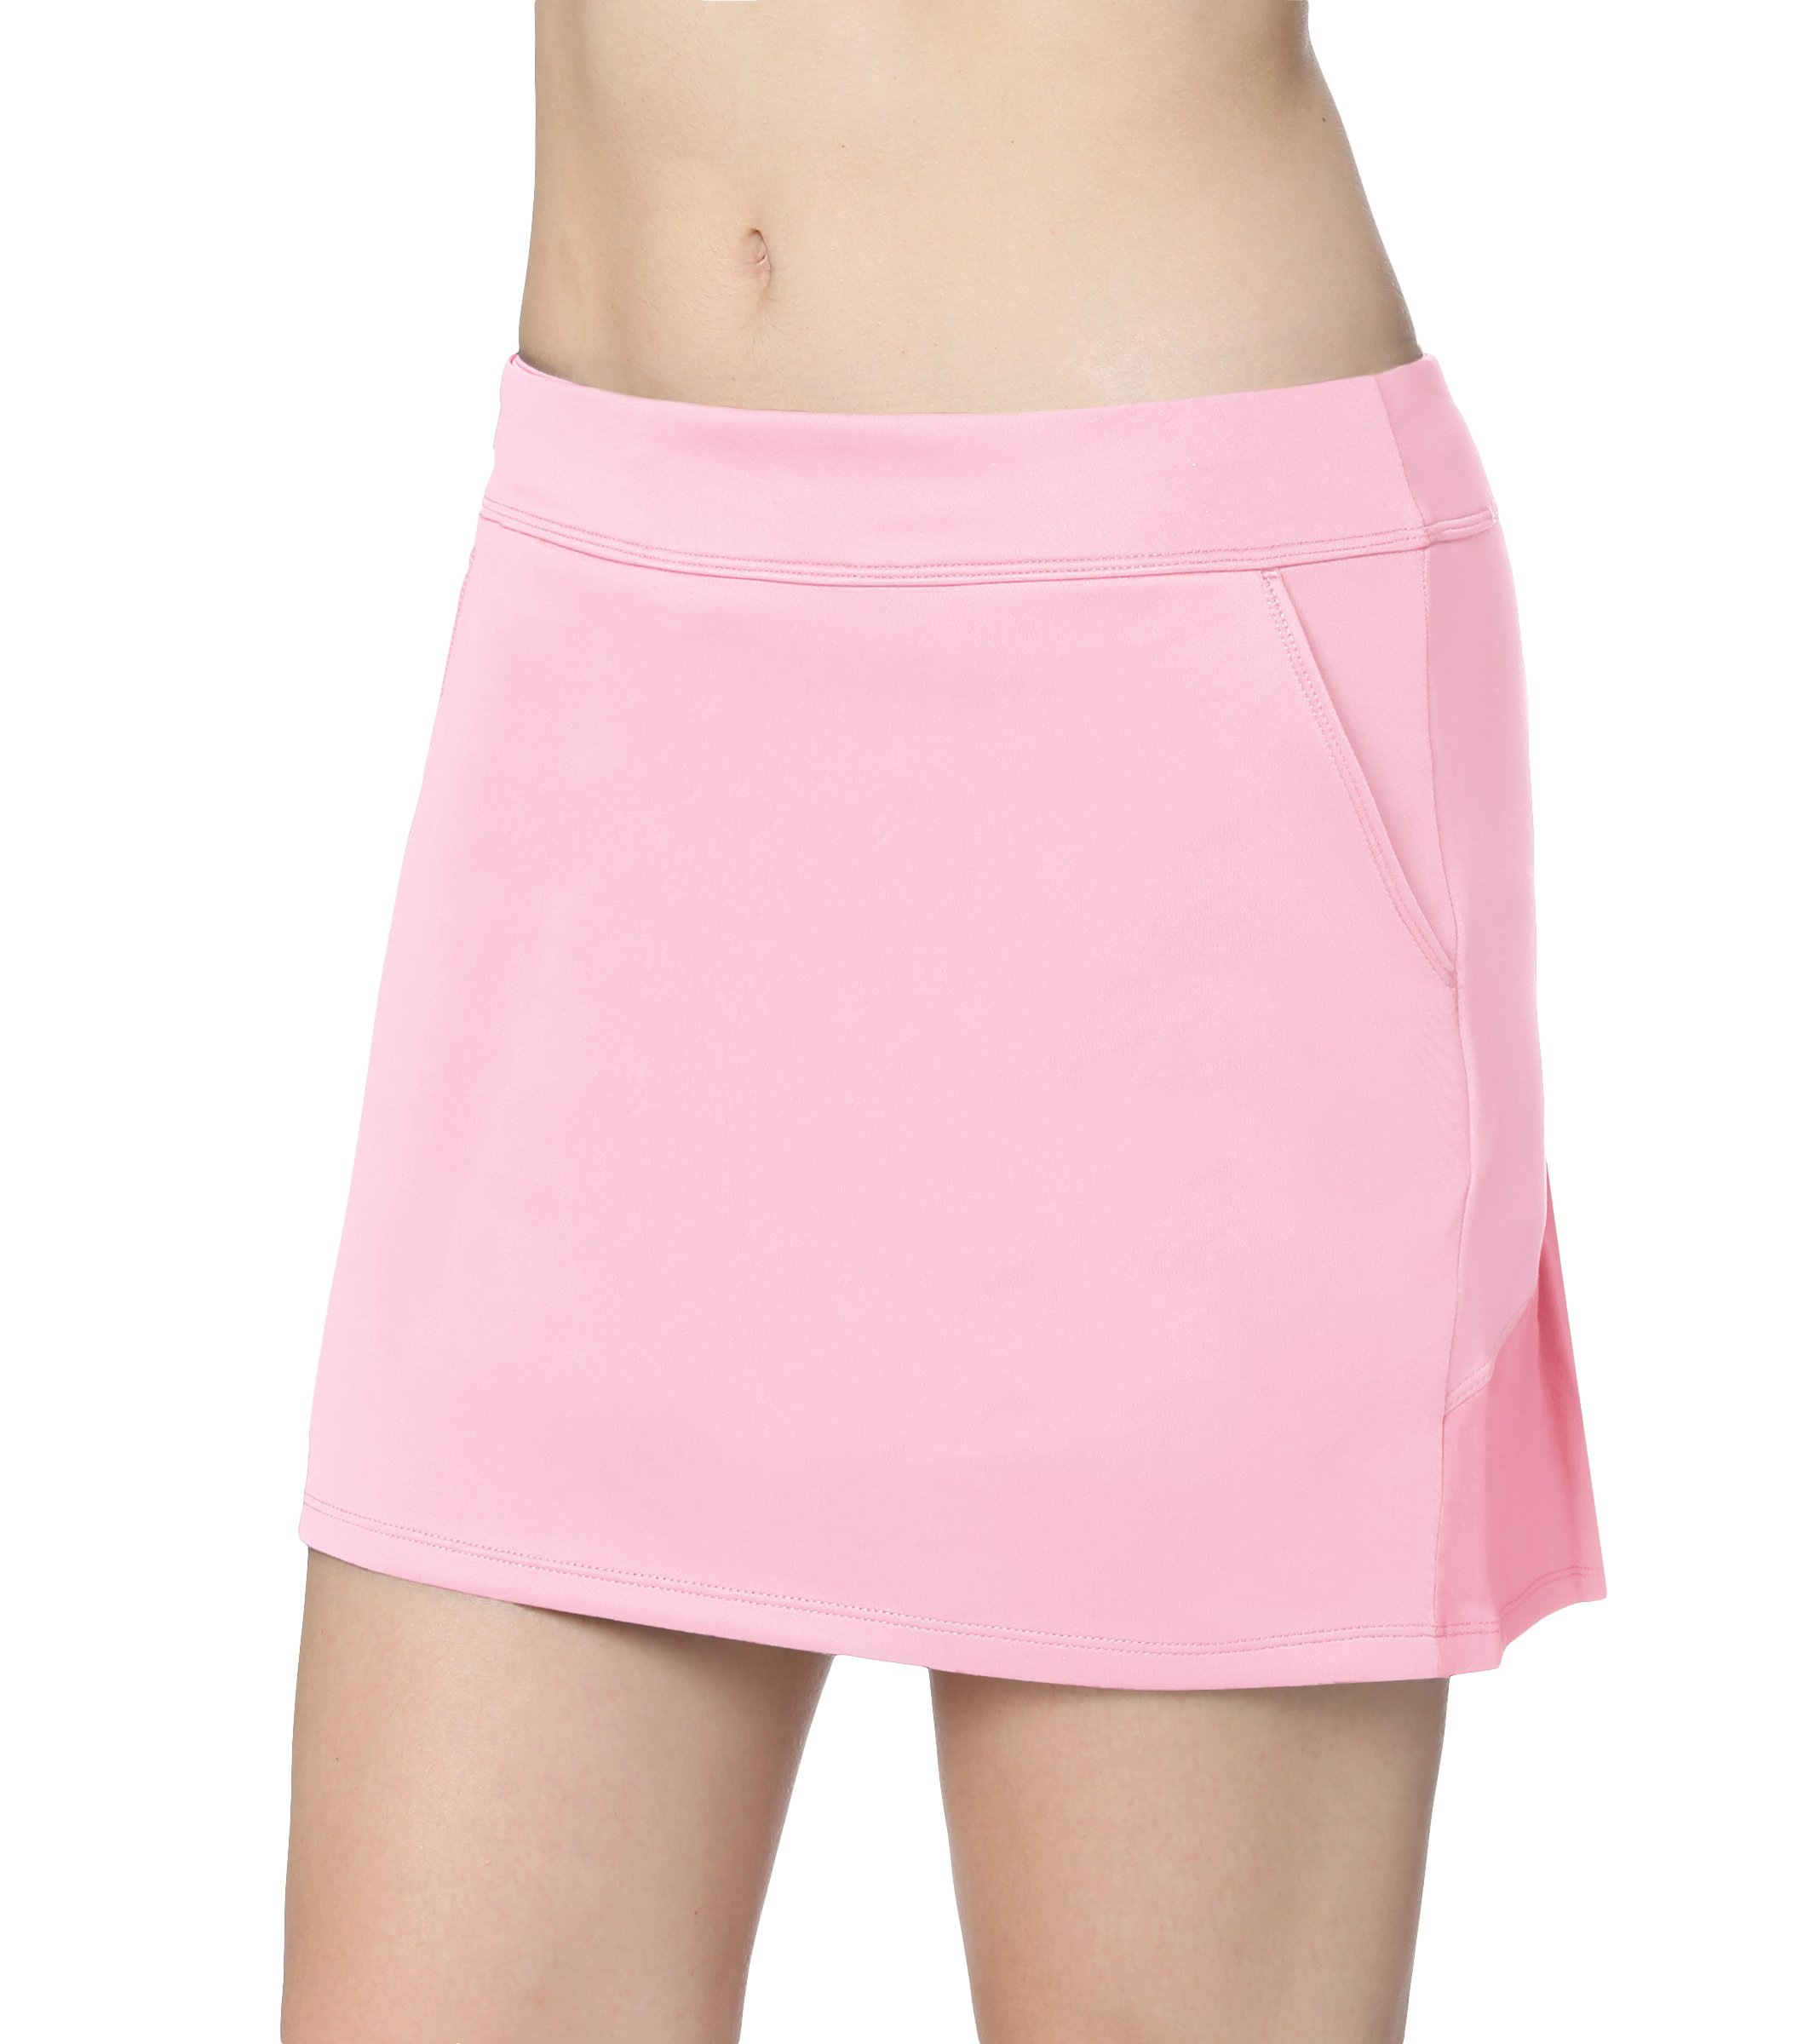 Honour Fashion Women's Elastic Pleated Golf Skort with Pockets(Pink,l)